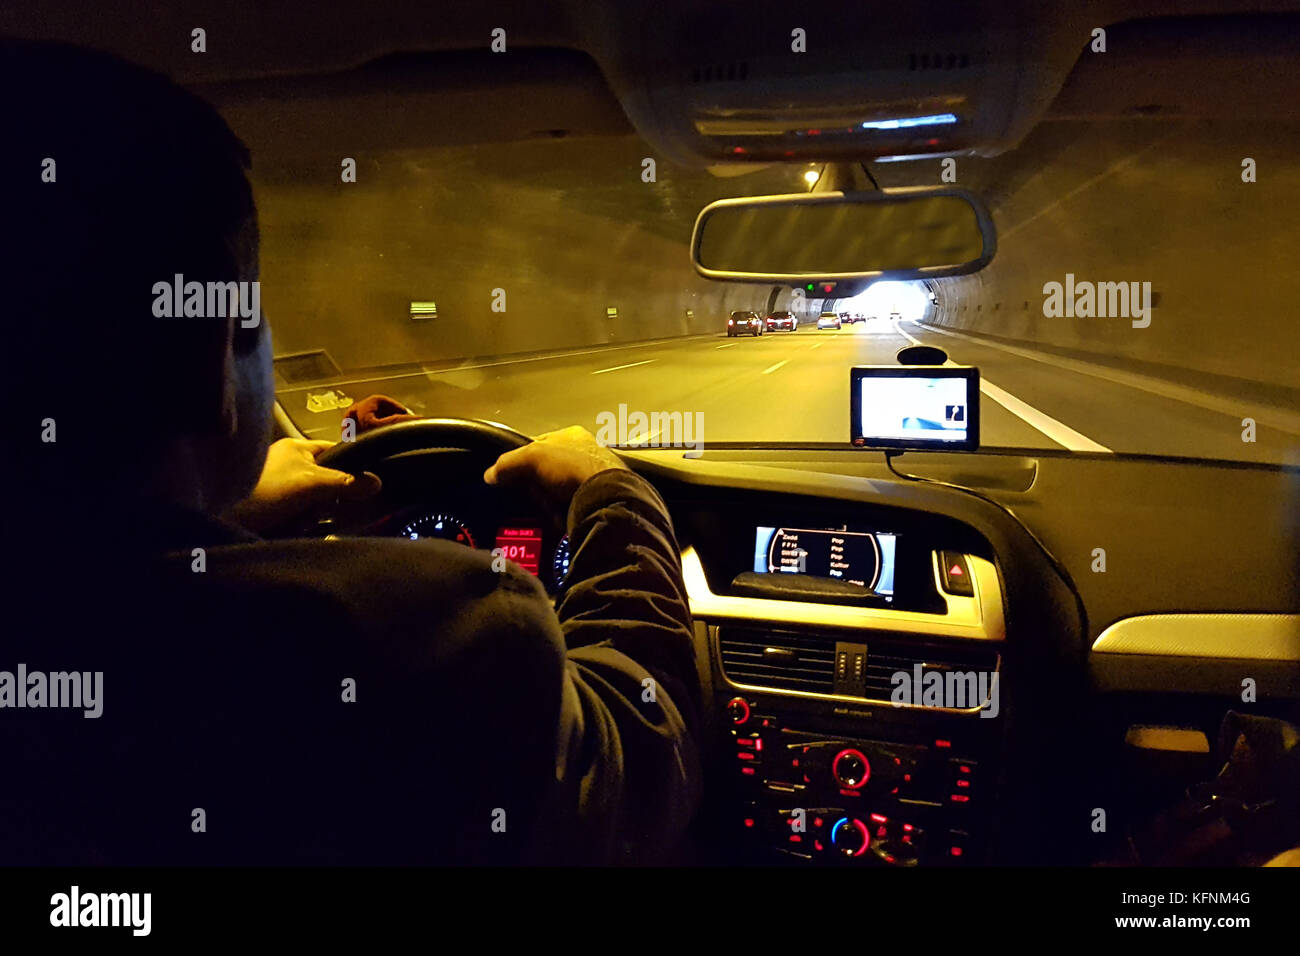 Close-up of gps navigation system In car - Stock Image